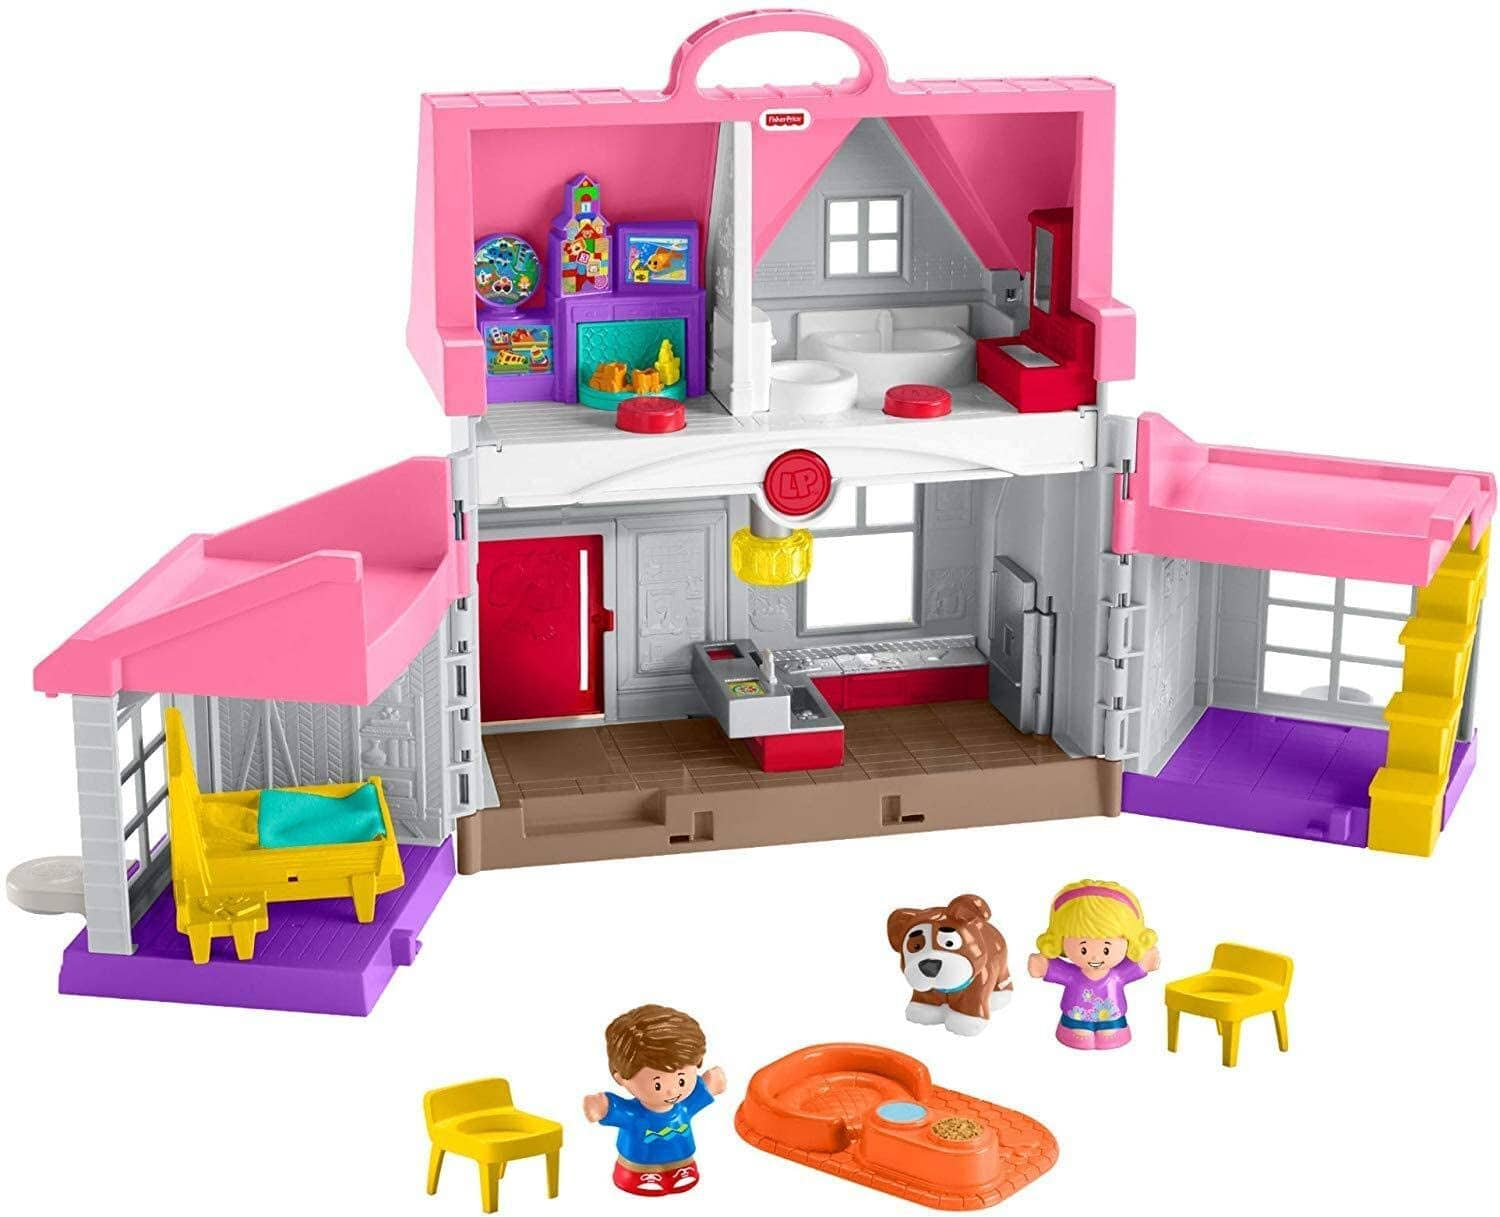 Fisher-Price Little People Big Helpers Home (Pink) $20 + 2.5% Slickdeals Cashback (PC Req'd) + Free Store Pickup at Target